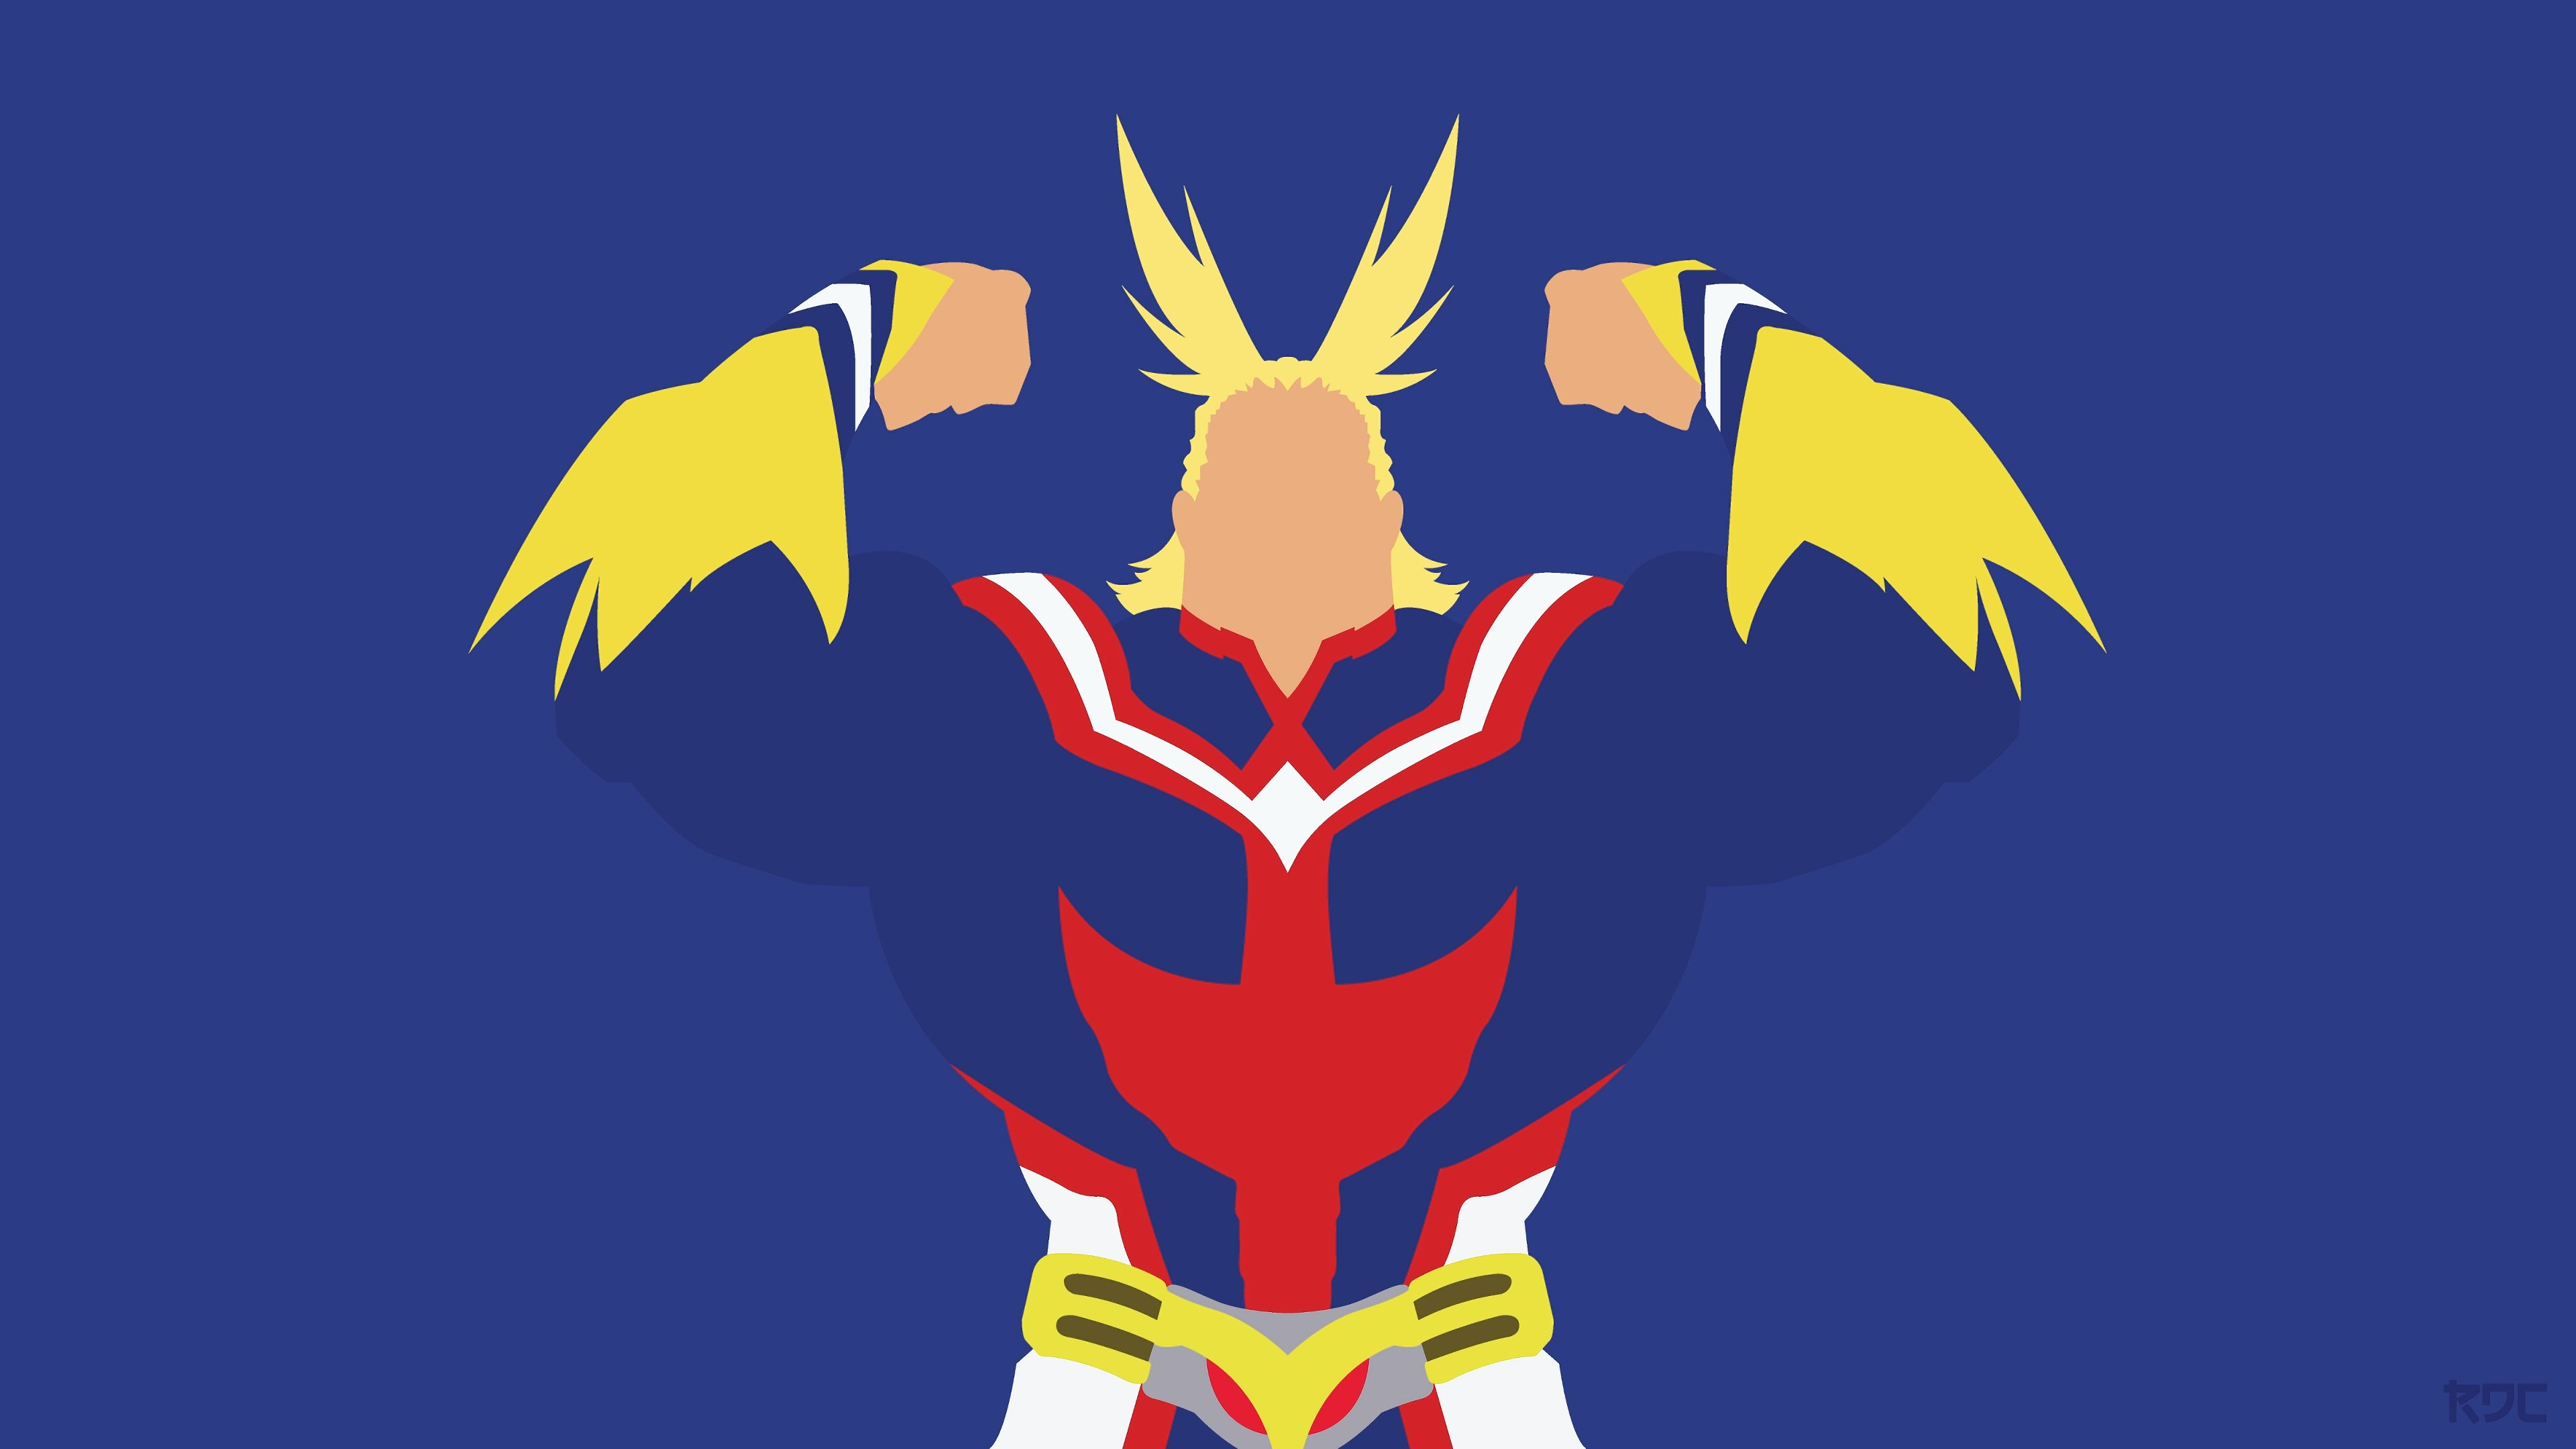 All Might Minimalist Toshinori Yagi My Hero Academia 4K